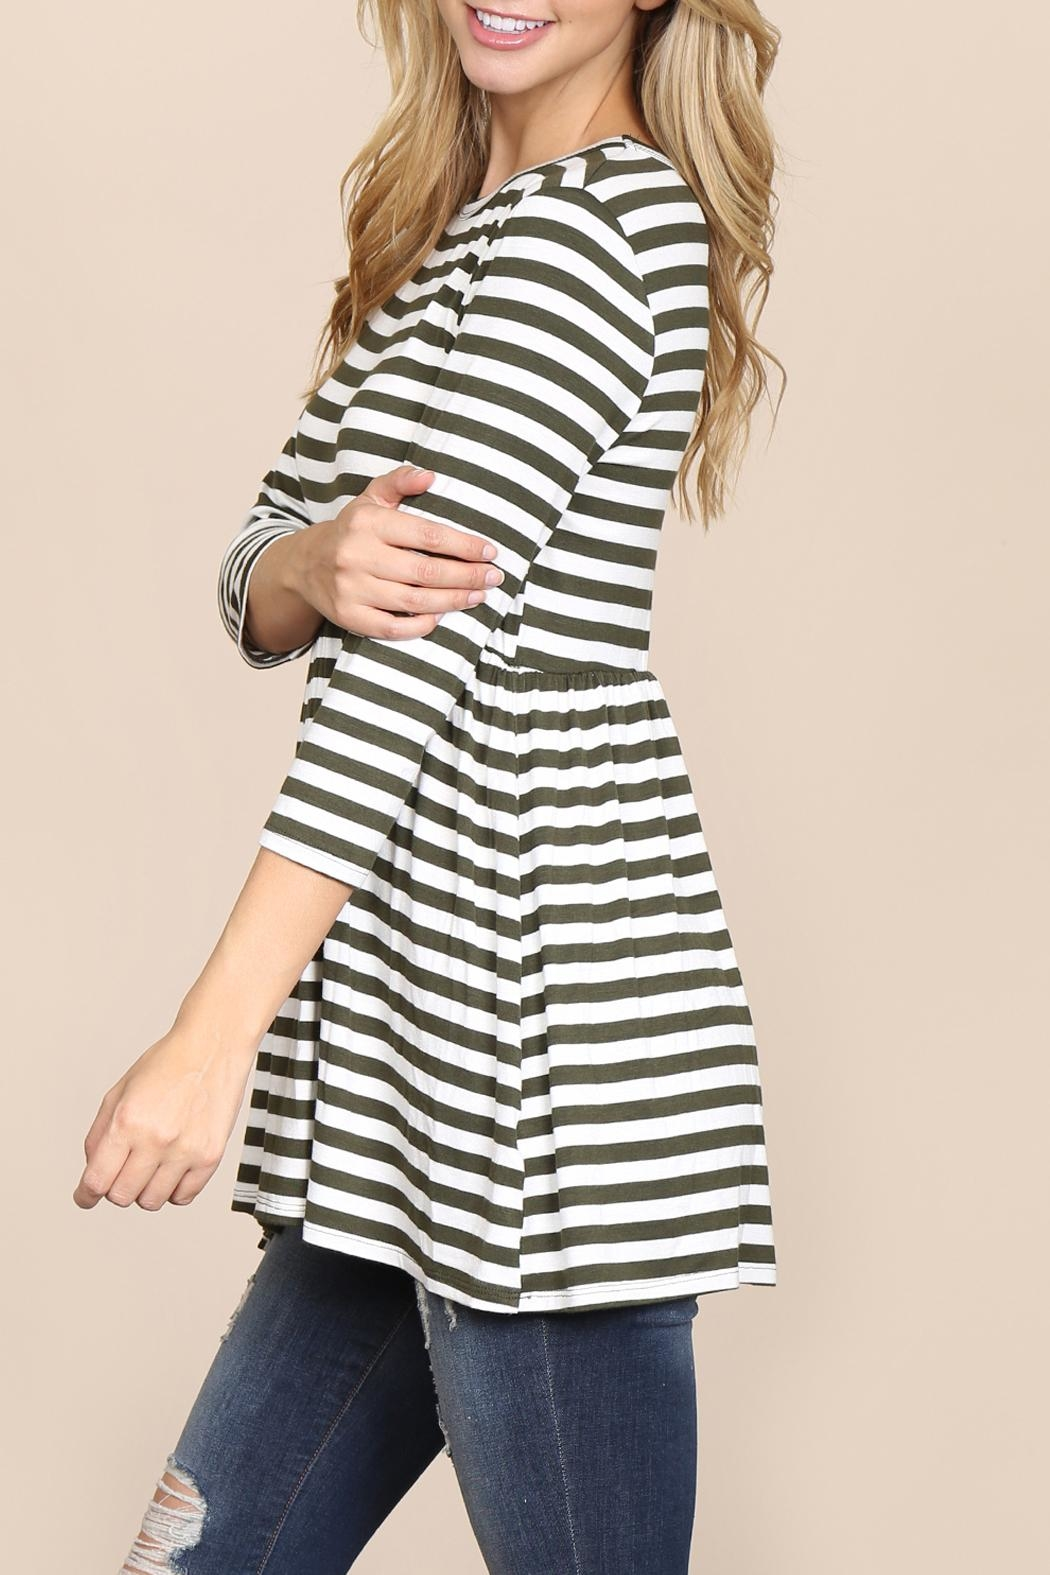 Riah Fashion Quarter-Sleeve Babydoll-Striped-Tunic - Front Full Image